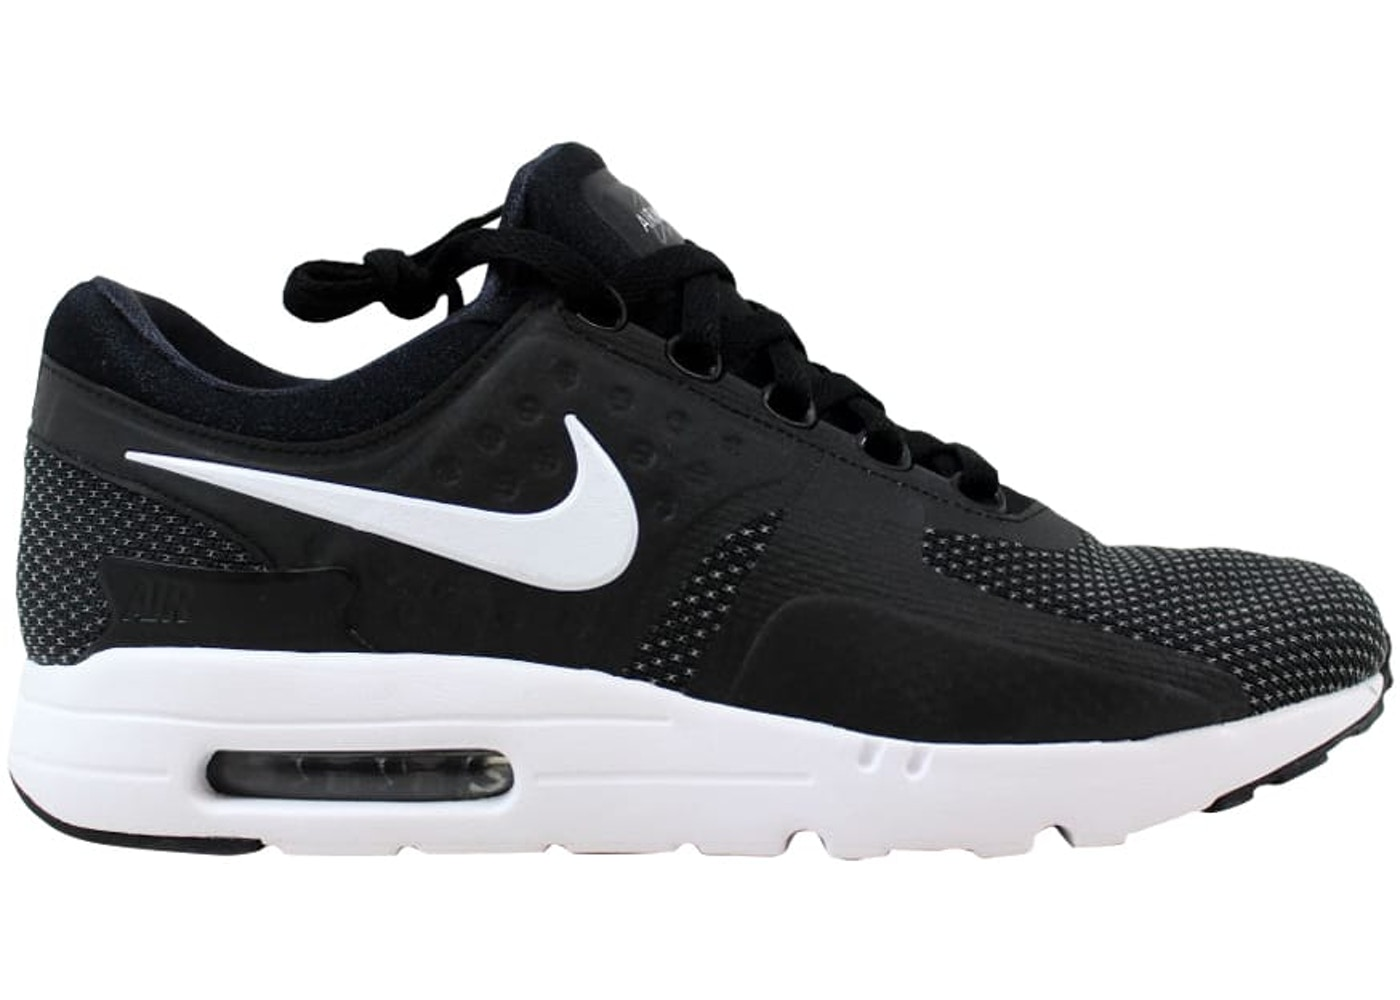 05f979d1a0 Nike Air Max Other Shoes - Lowest Ask